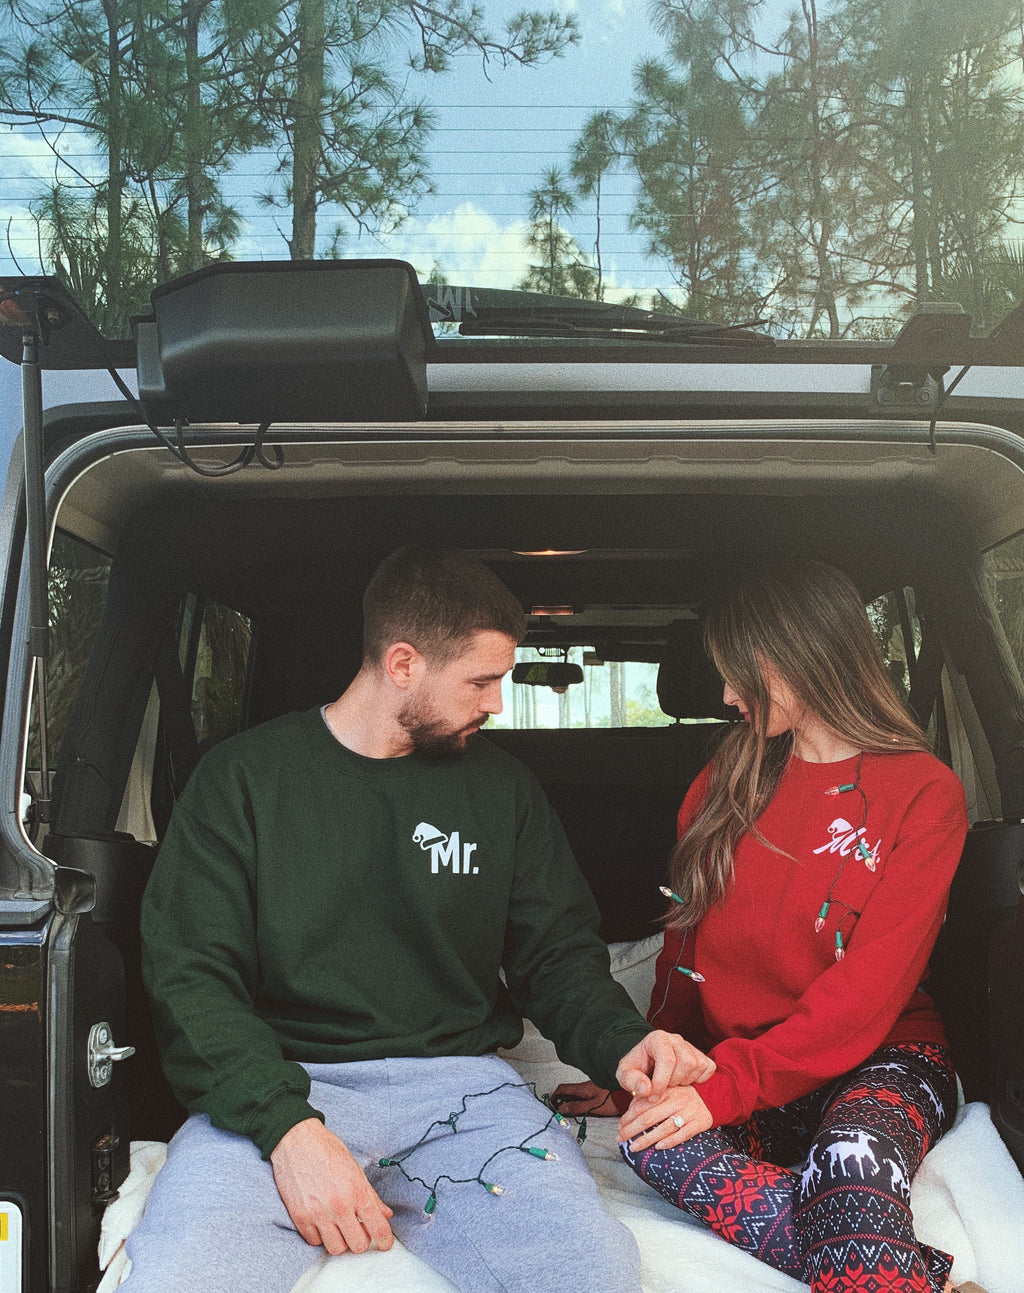 Rock these cute MR and MRS sweatshirts all season long! Rock these cute MR and MRS sweatshirts all season long!